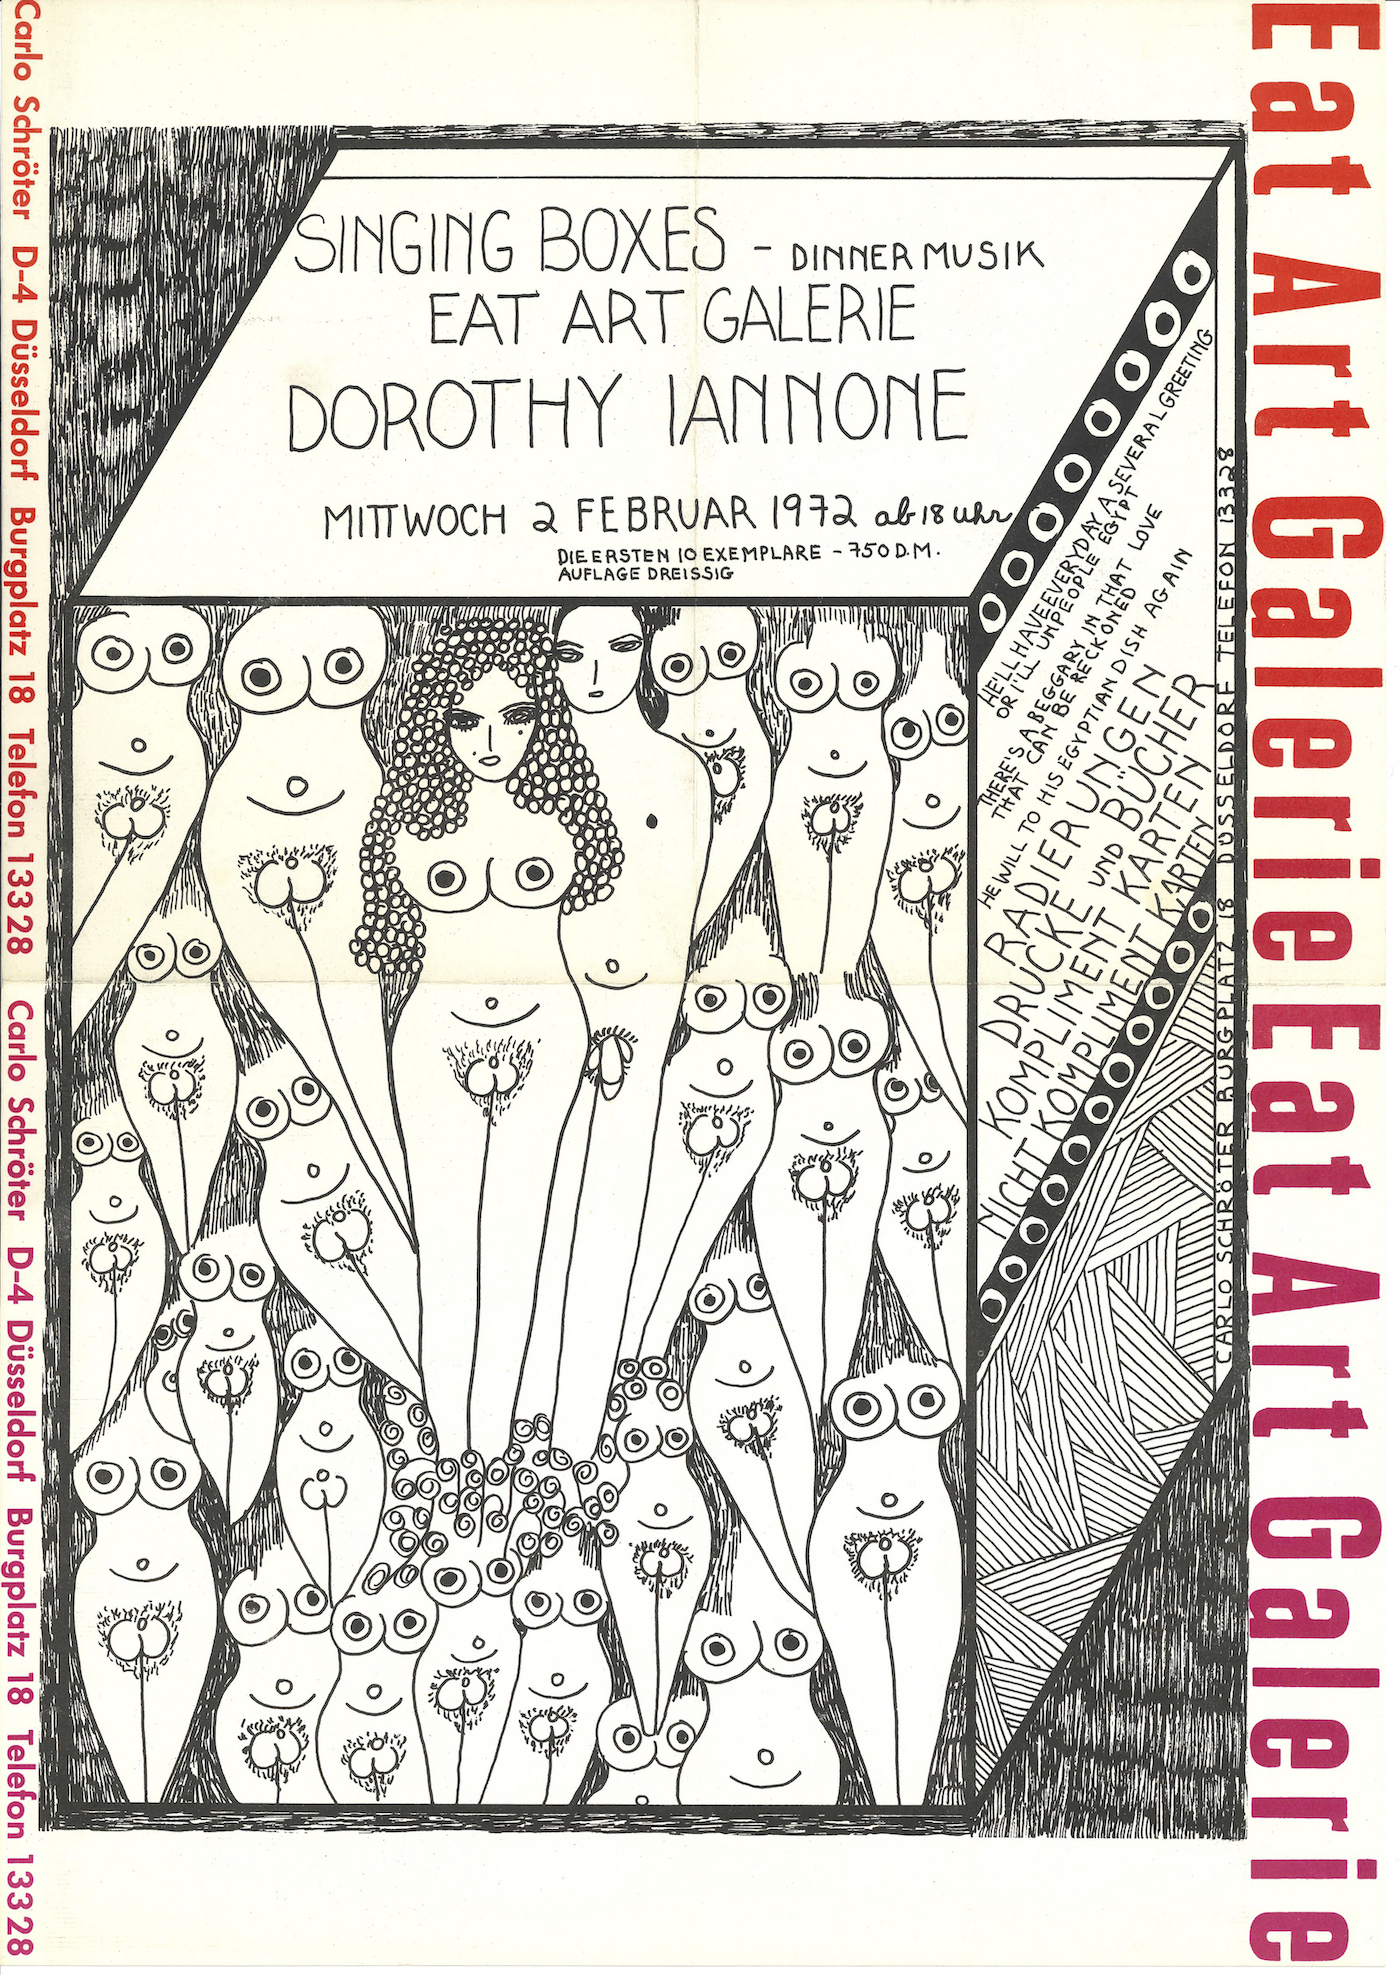 "Dorothy Iannone, Invitation, ""Singing Boxes – Dinner Music"", Eat Art Gallery by Daniel Spoerri, Düsseldorf 1972 (Invitation Poster); Archiv der Avantgarden, Staatliche Kunstsammlungen Dresden"